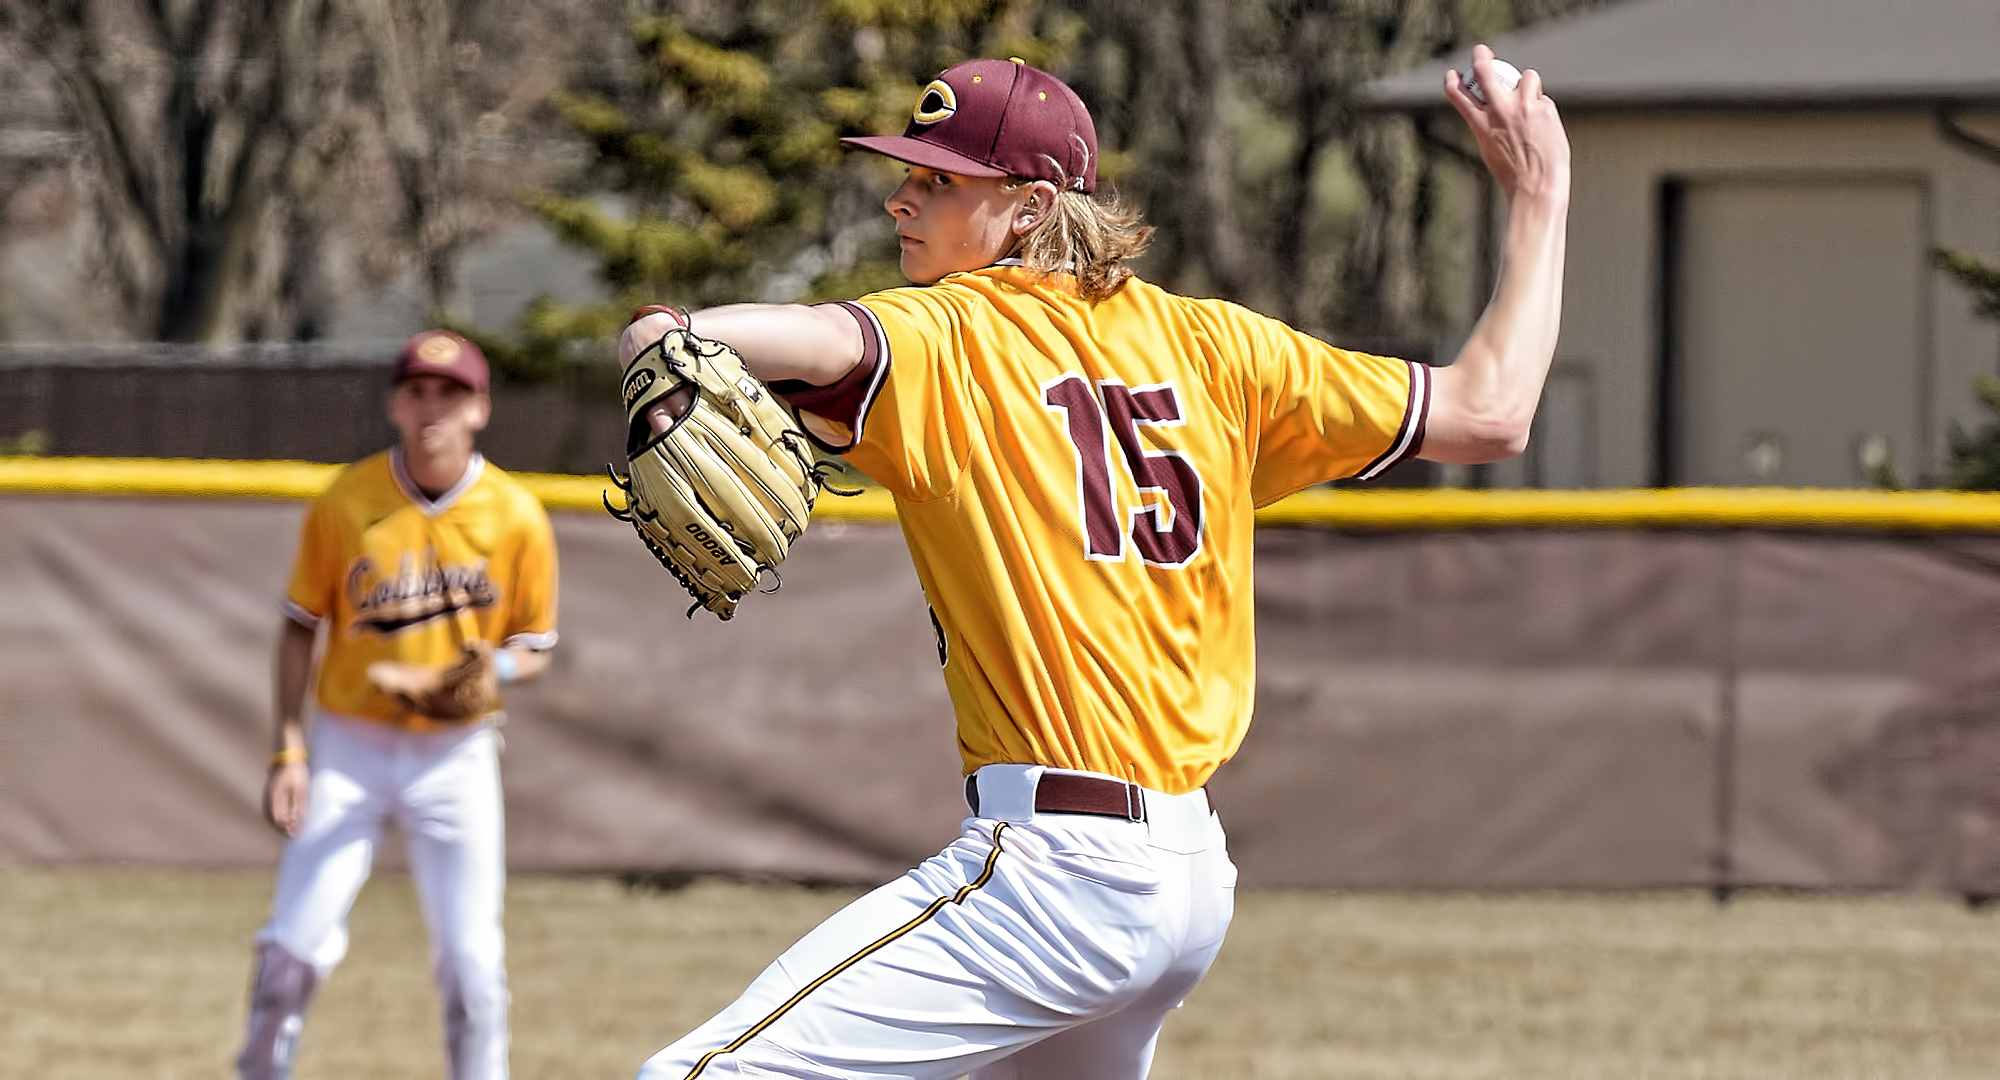 Junior pitcher Ty Syverson pitched 6.0 scoreless innings and recorded his second win in Florida as the Cobbers beat Beloit 4-0 in the second game to earn a split in the DH.